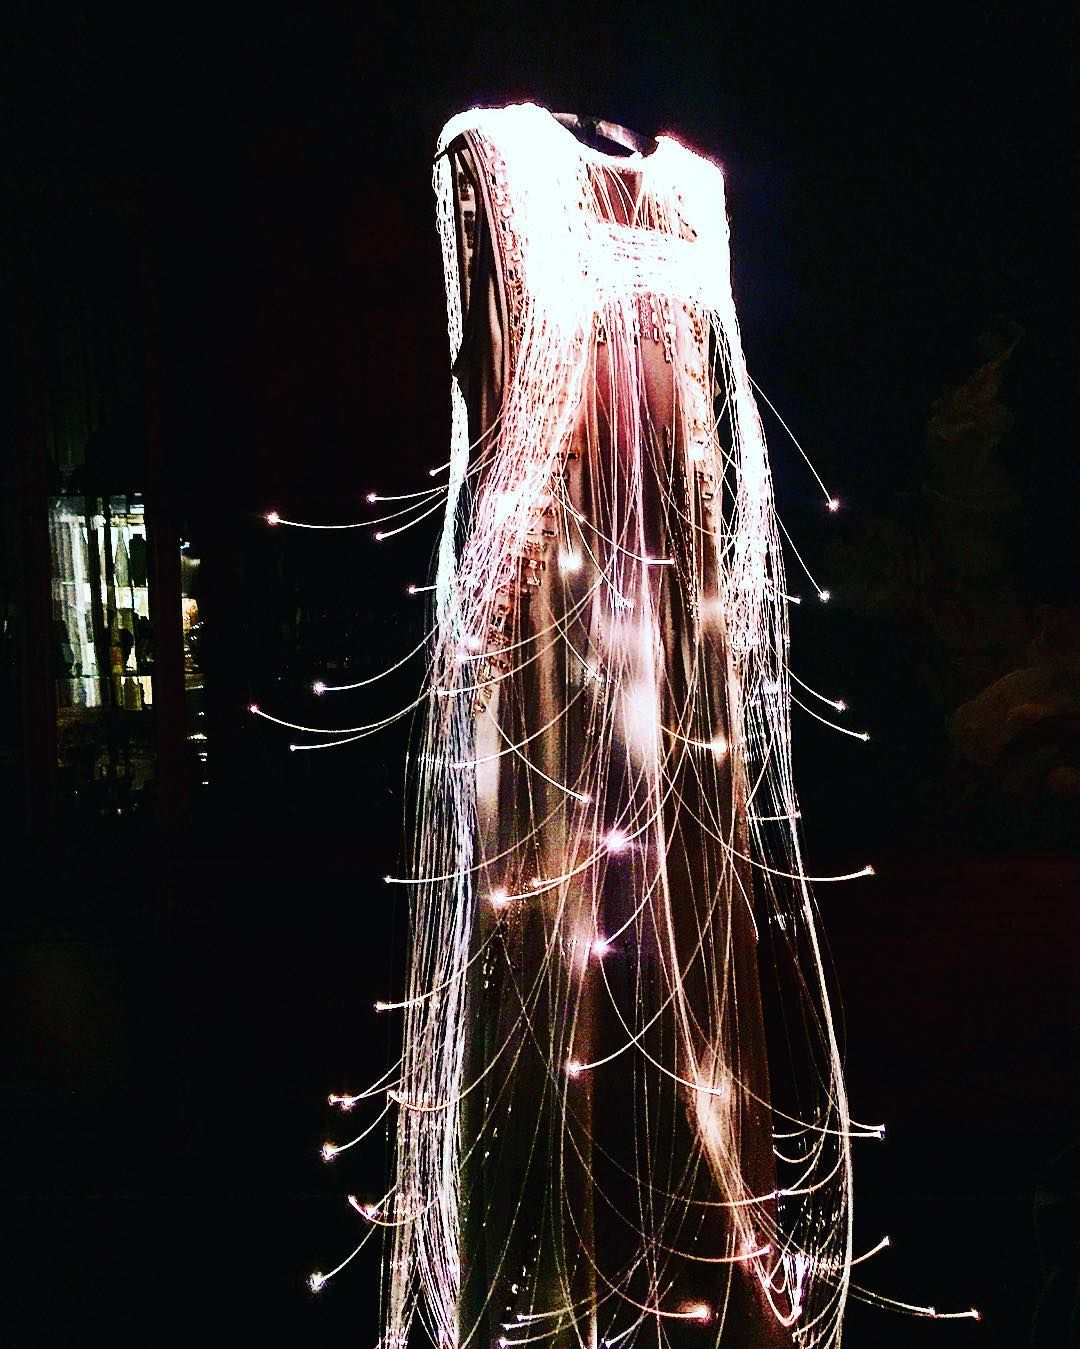 Pin By Emily Lee On Scarlett: All Of The Lights All Of The Lights